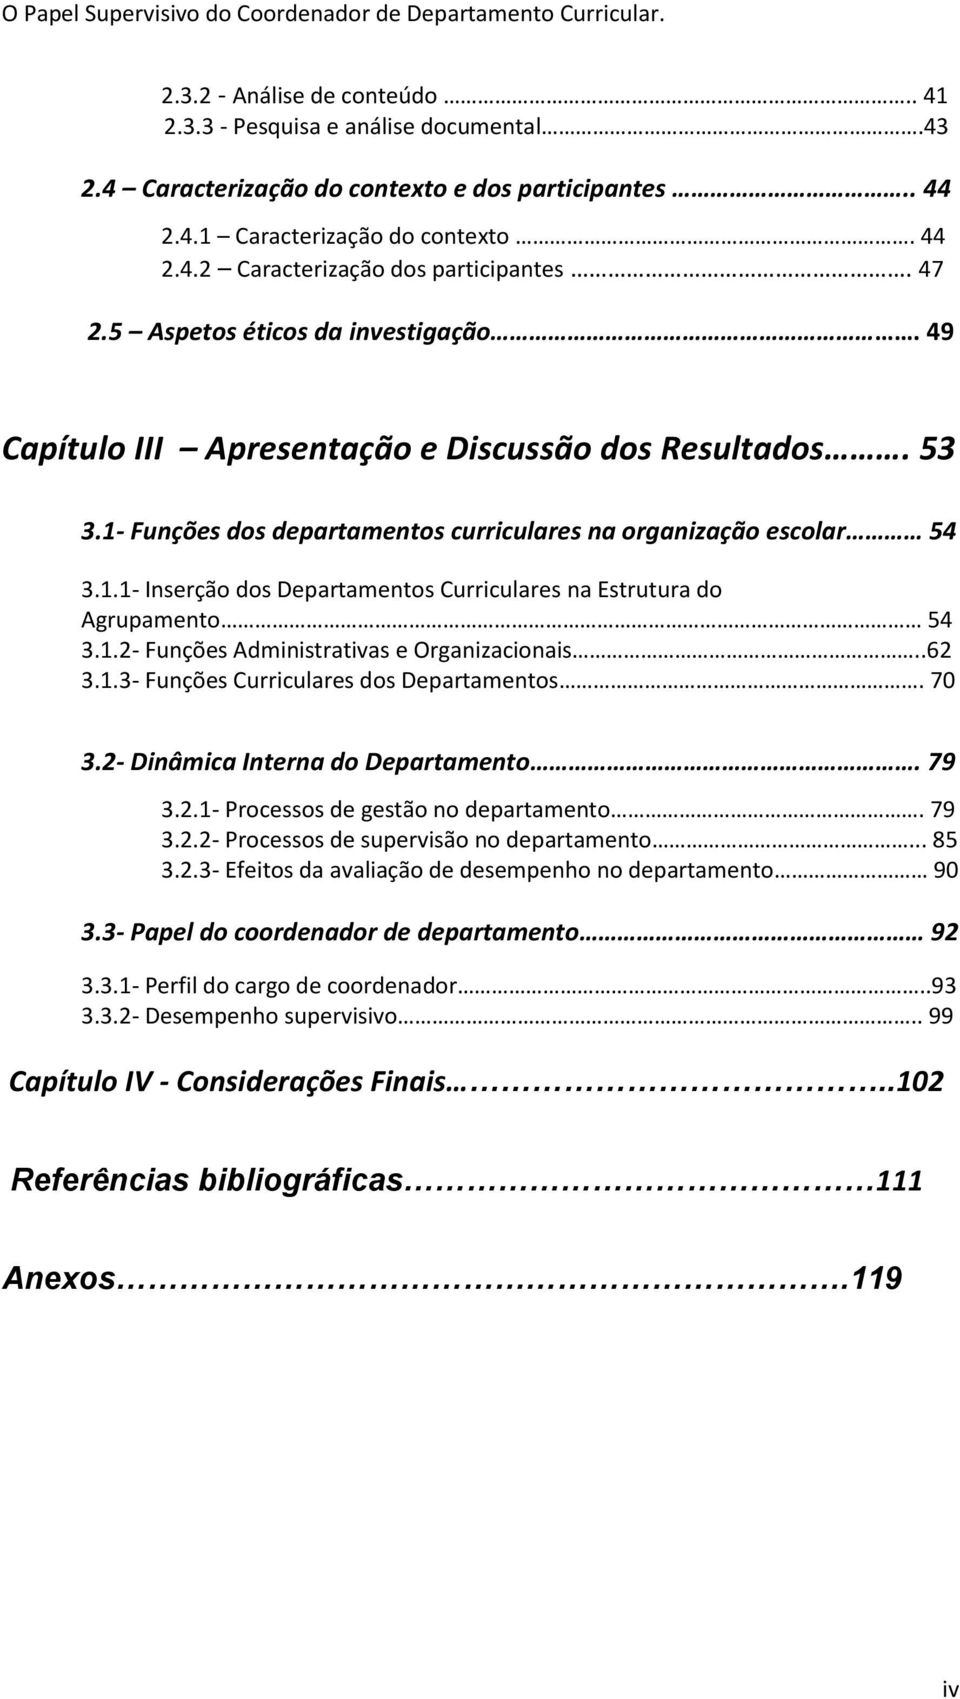 1.2 Funções Administrativas e Organizacionais..62 3.1.3 Funções Curriculares dos Departamentos. 70 3.2 Dinâmica Interna do Departamento. 79 3.2.1 Processos de gestão no departamento. 79 3.2.2 Processos de supervisão no departamento.